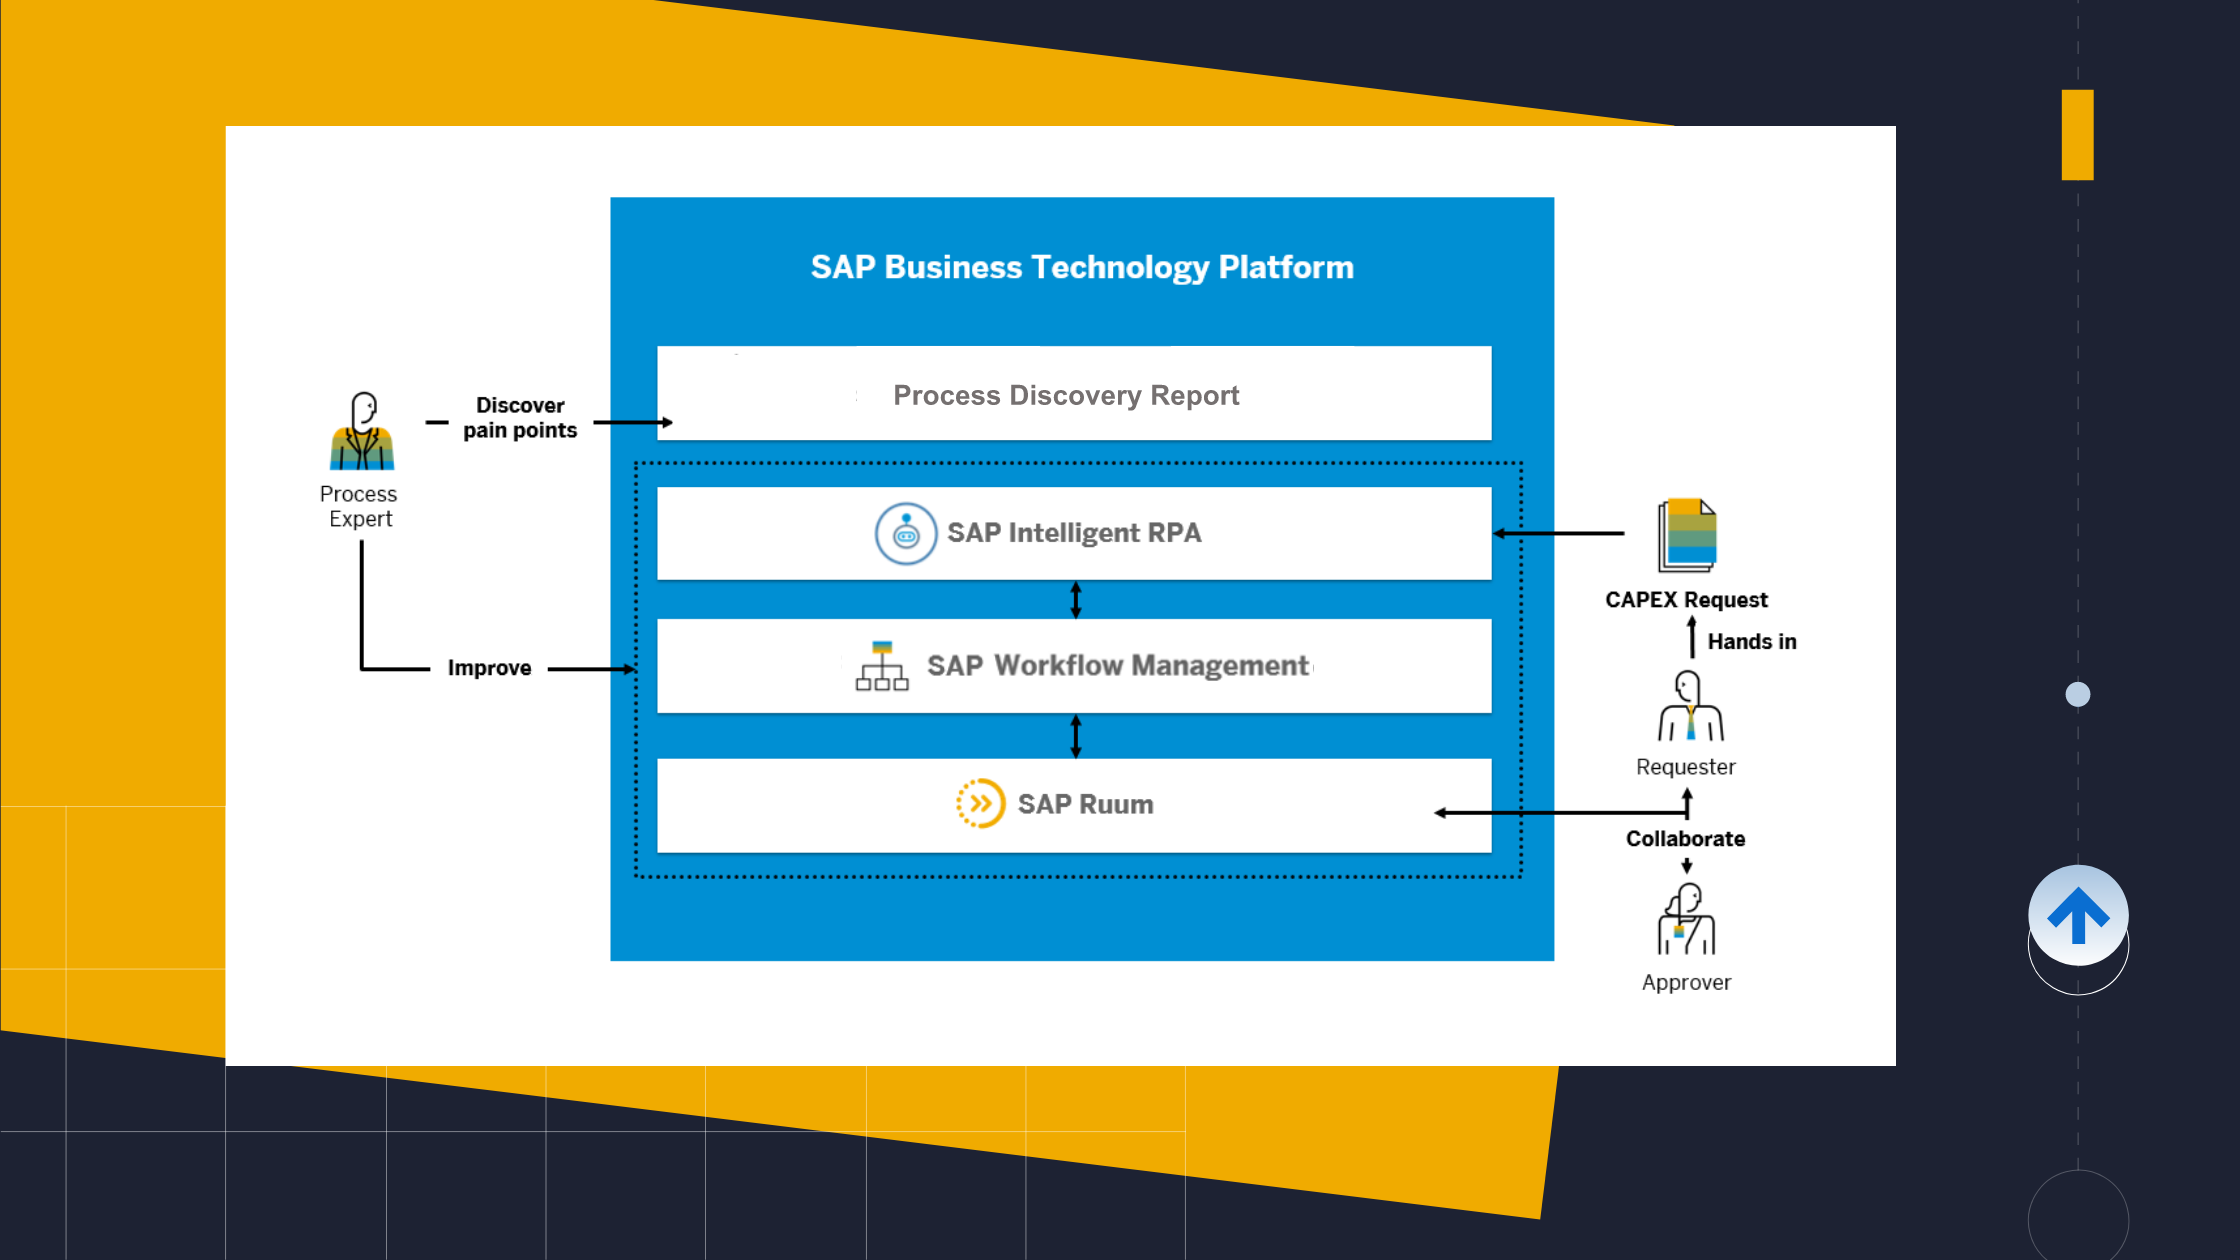 Diagram%20showing%20how%20SAP%20Intelligent%20RPA%2C%20SAP%20Workflow%20Management%2C%20and%20SAP%20Ruum%20can%20be%20used%20to%20improve%20a%20capital%20expenditure%20workflow.